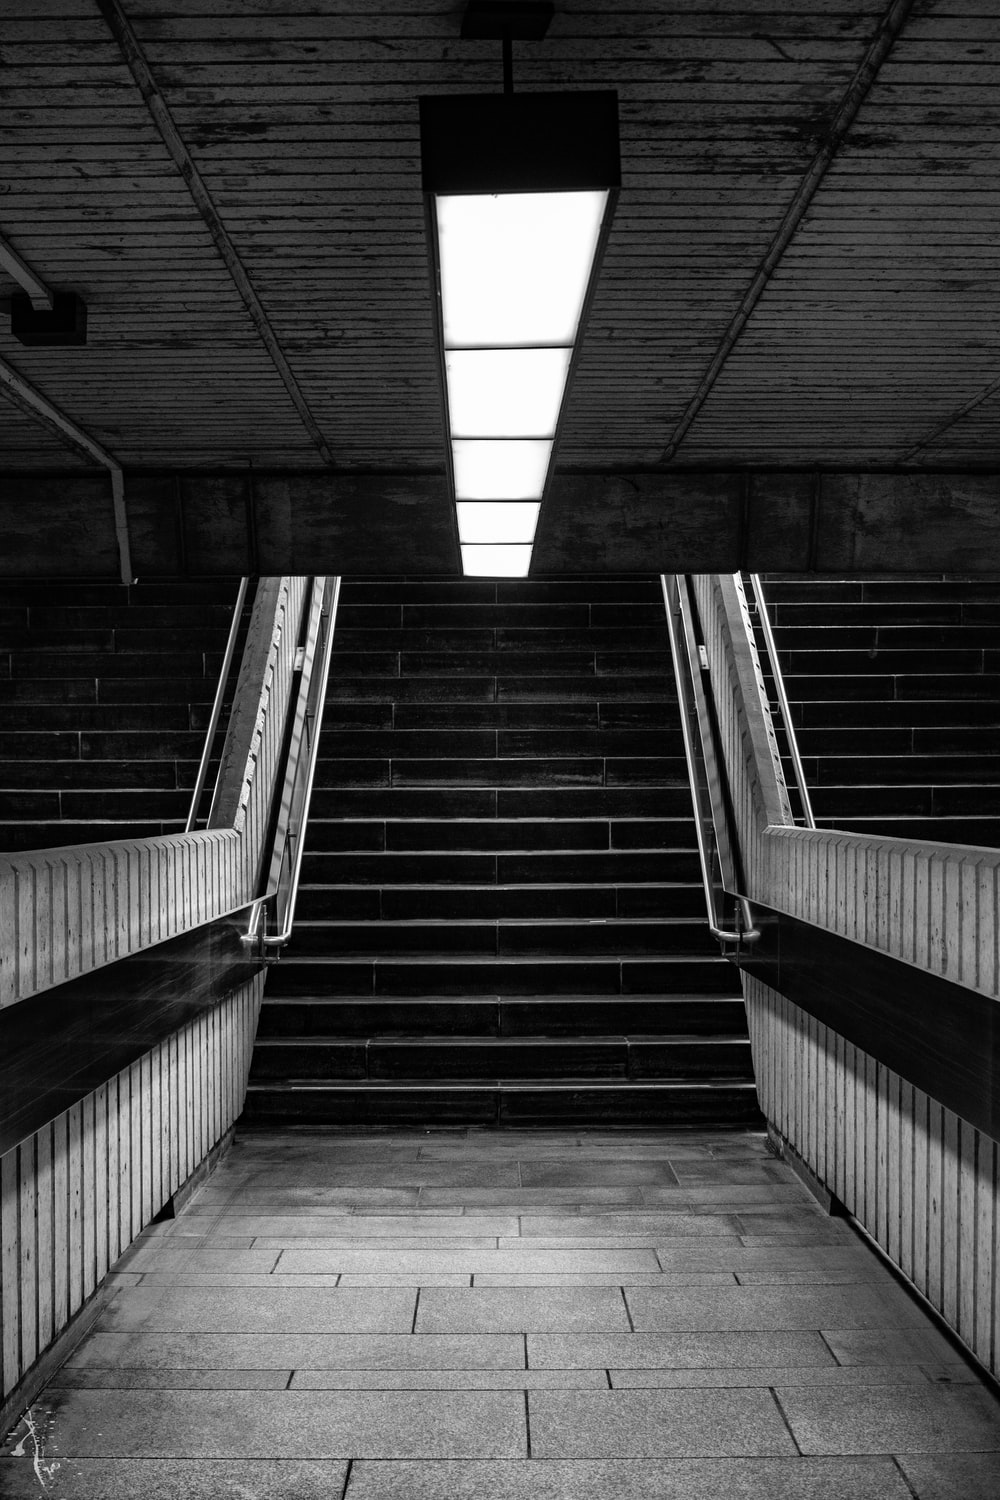 grayscale photography of subway stairs